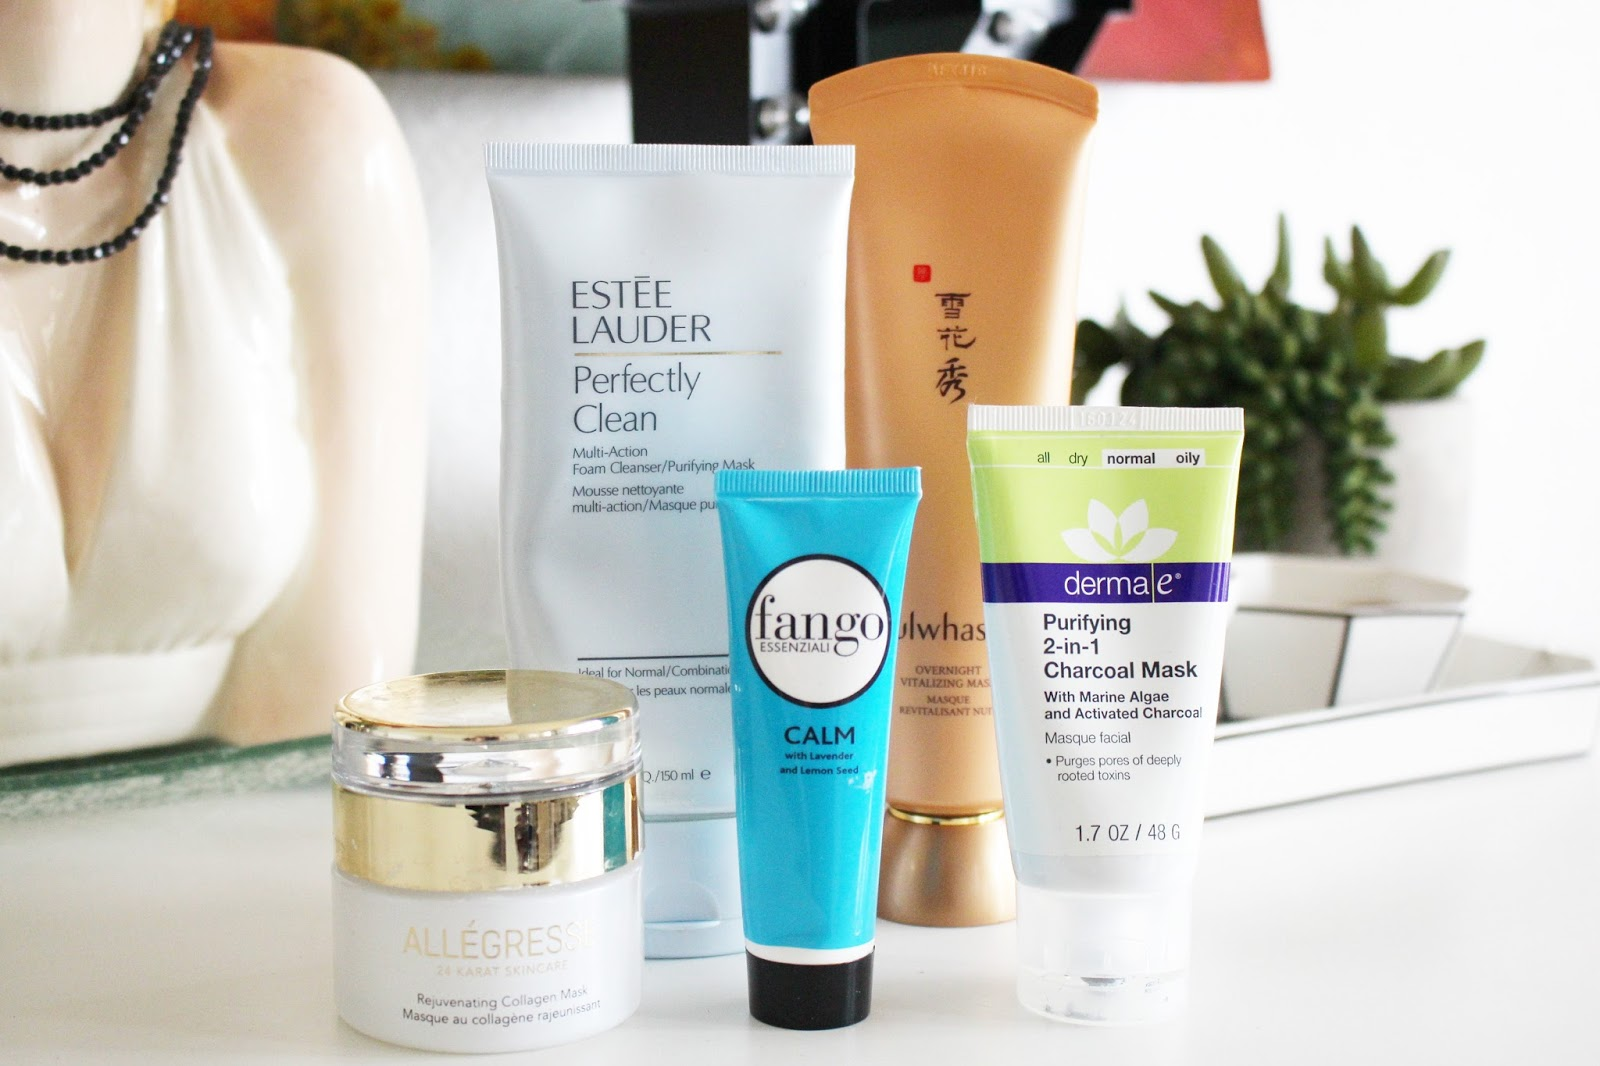 facial masks for spring, estee lauder perfectly clean, fango calm mask, derma-e charcoal mask, allegresse collagen mask, sulwahsoo overnight vitalizing mask